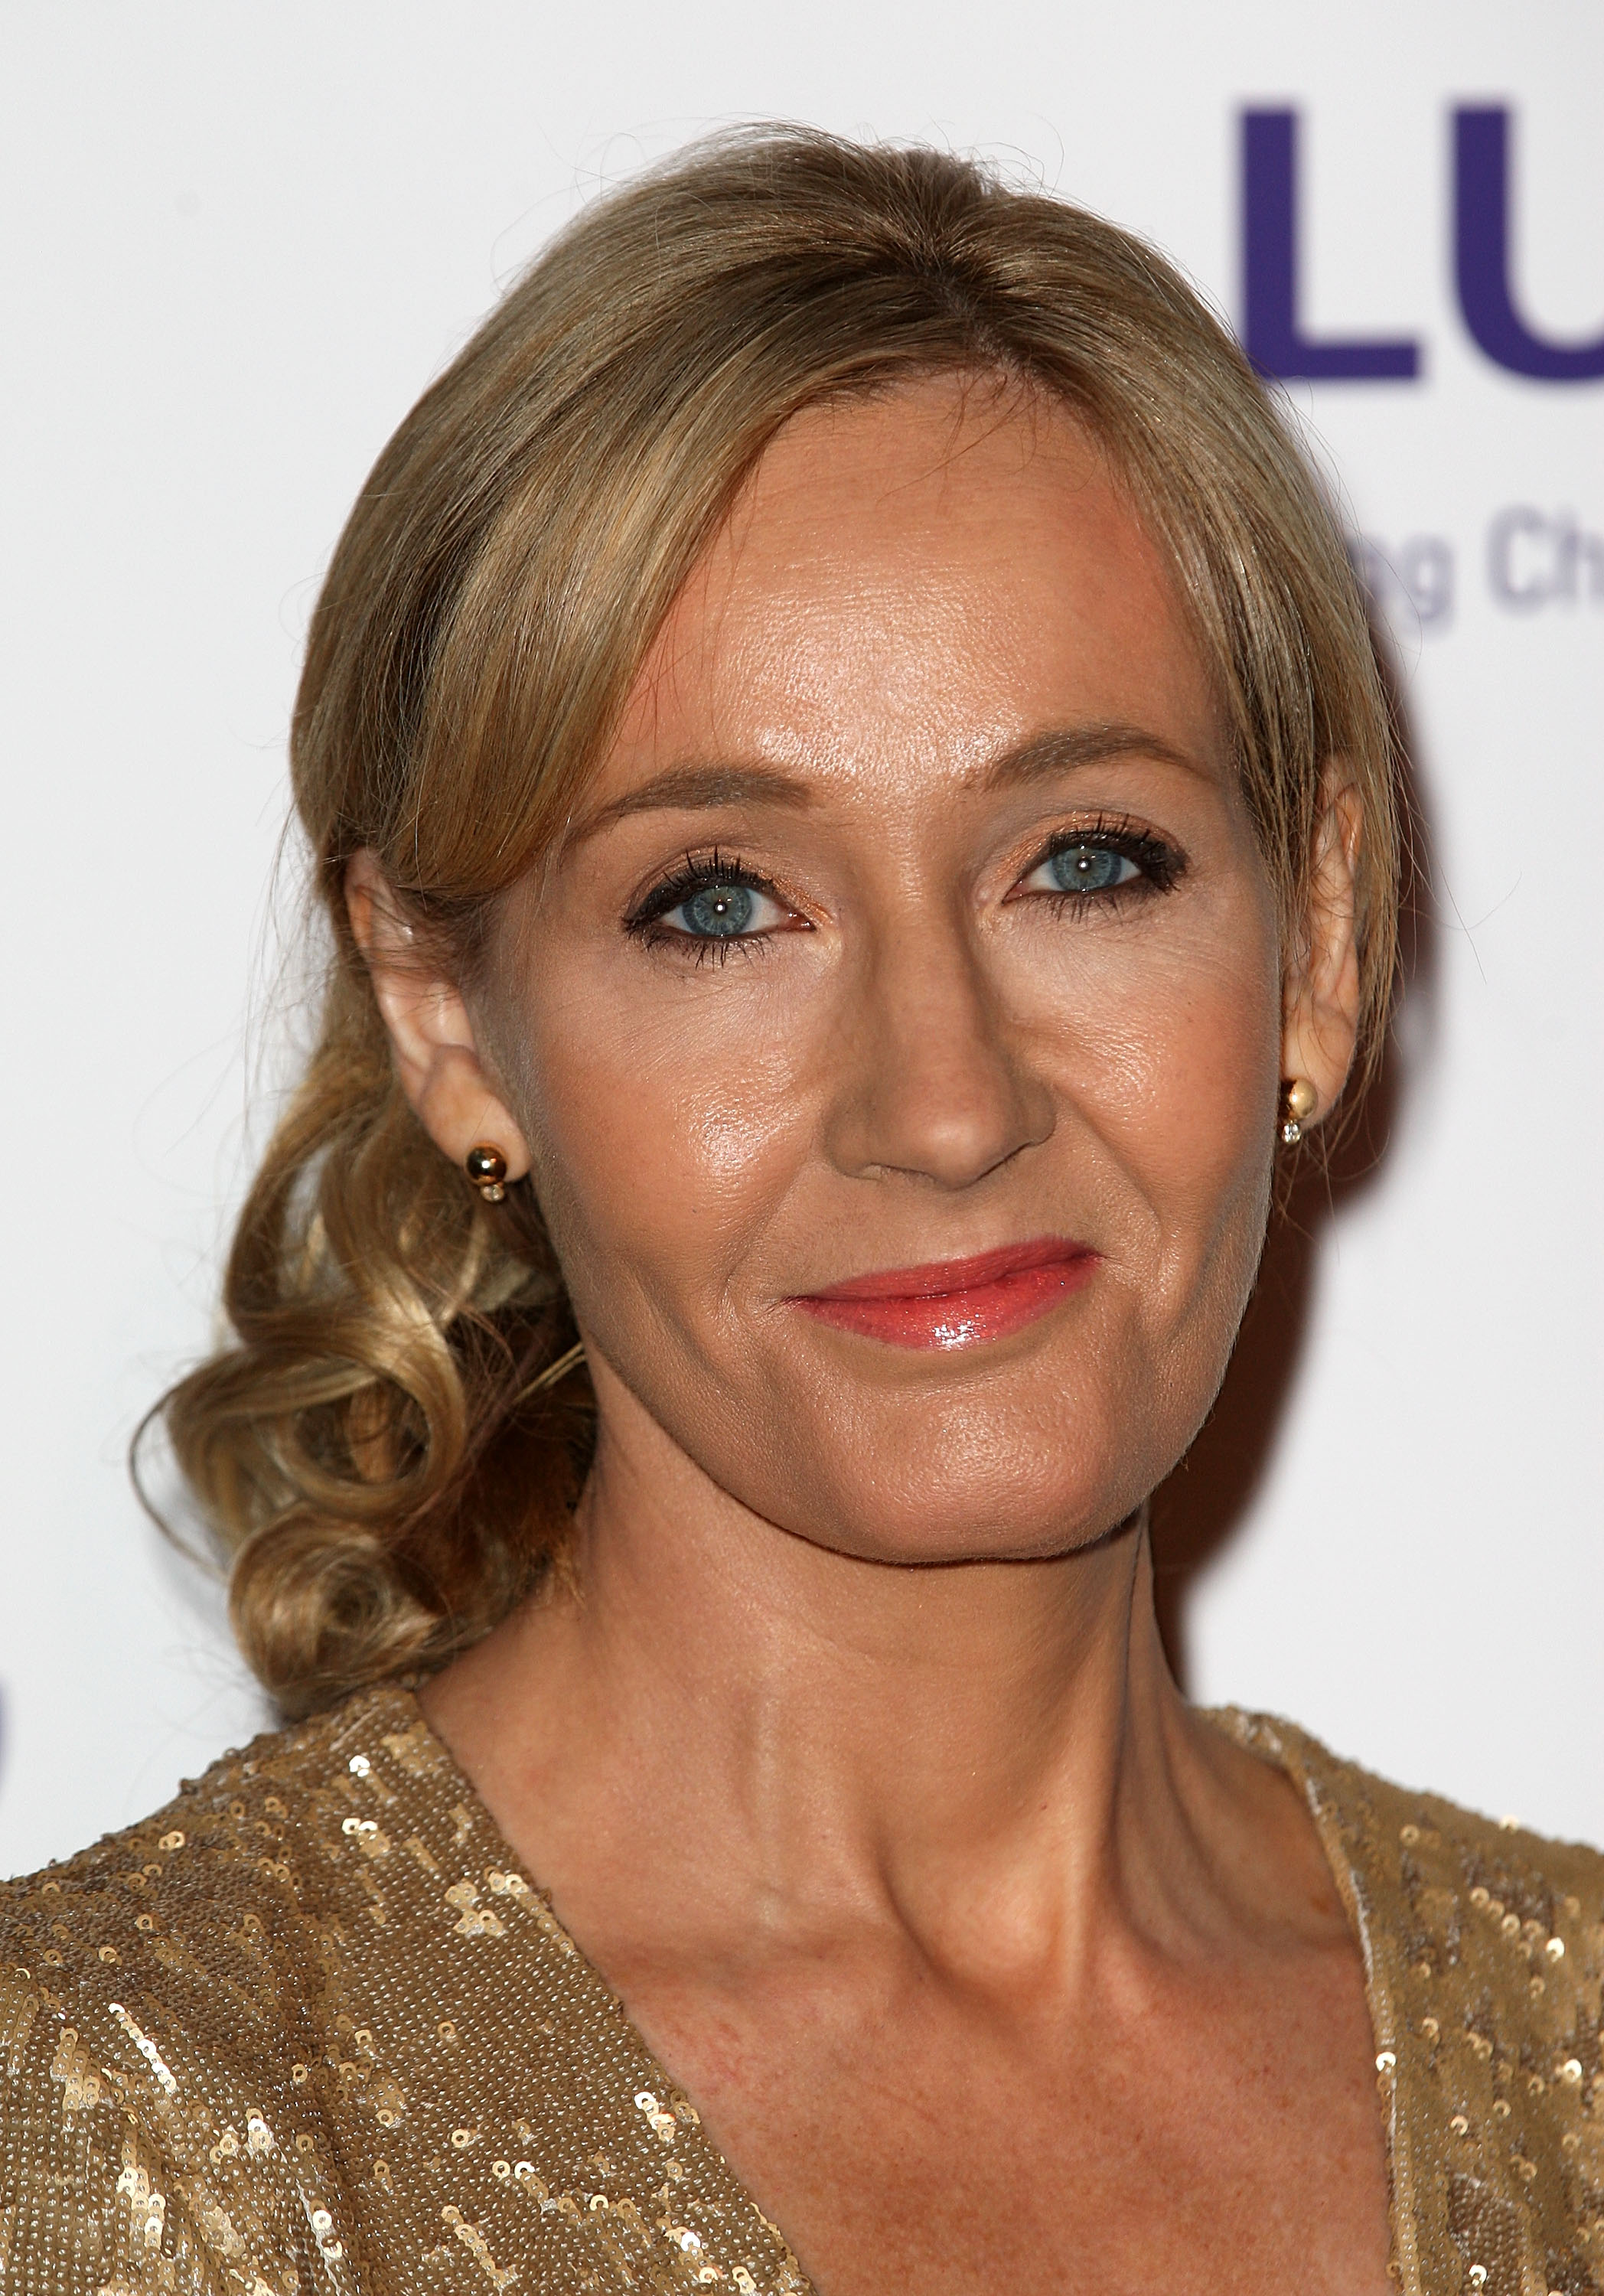 was j k rowling the evil villain all long this hilarious tumblr  danny e martindale getty images entertainment getty images